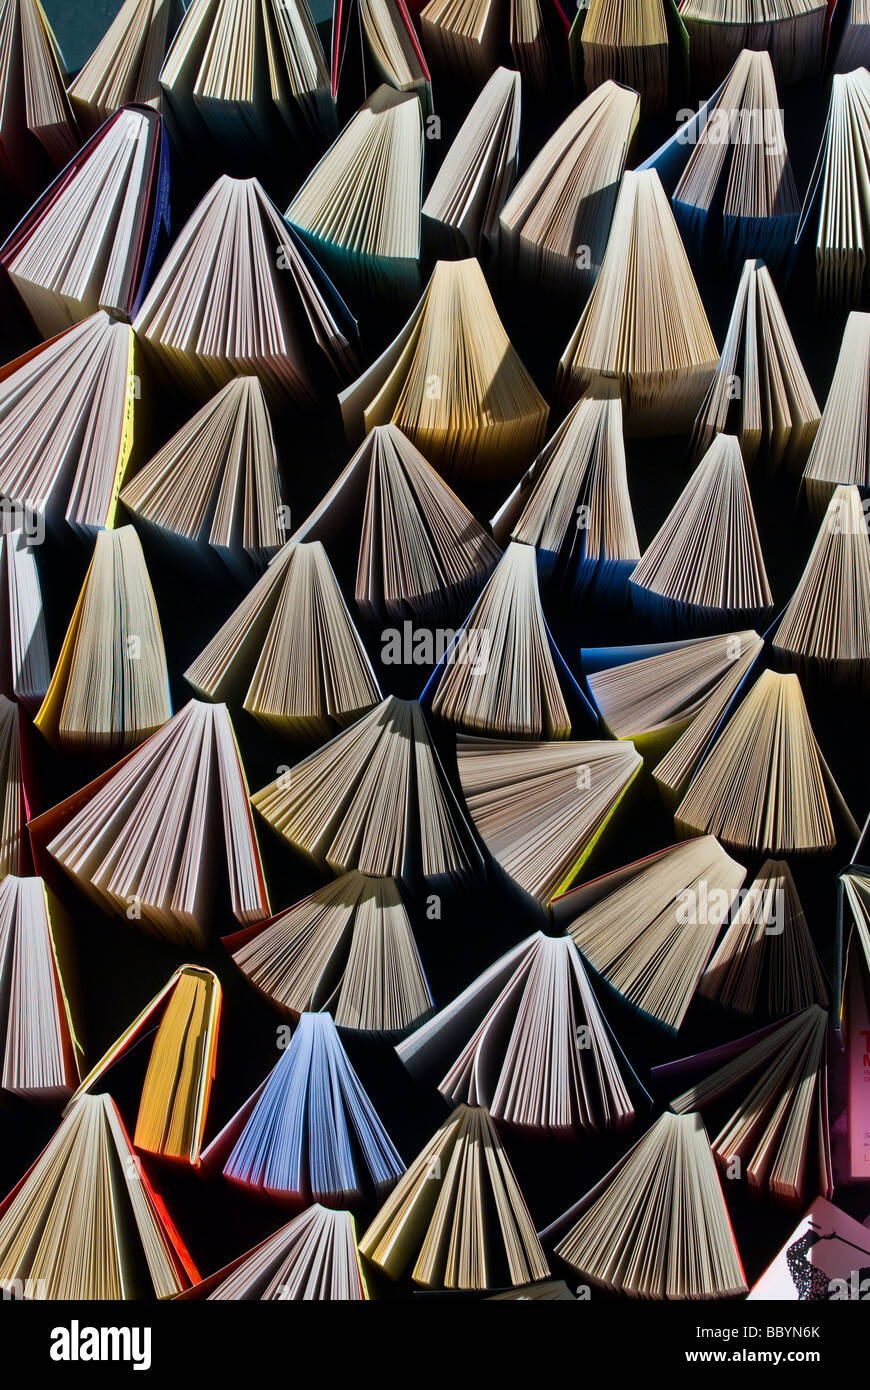 photograph of fanned out books - Stock Image